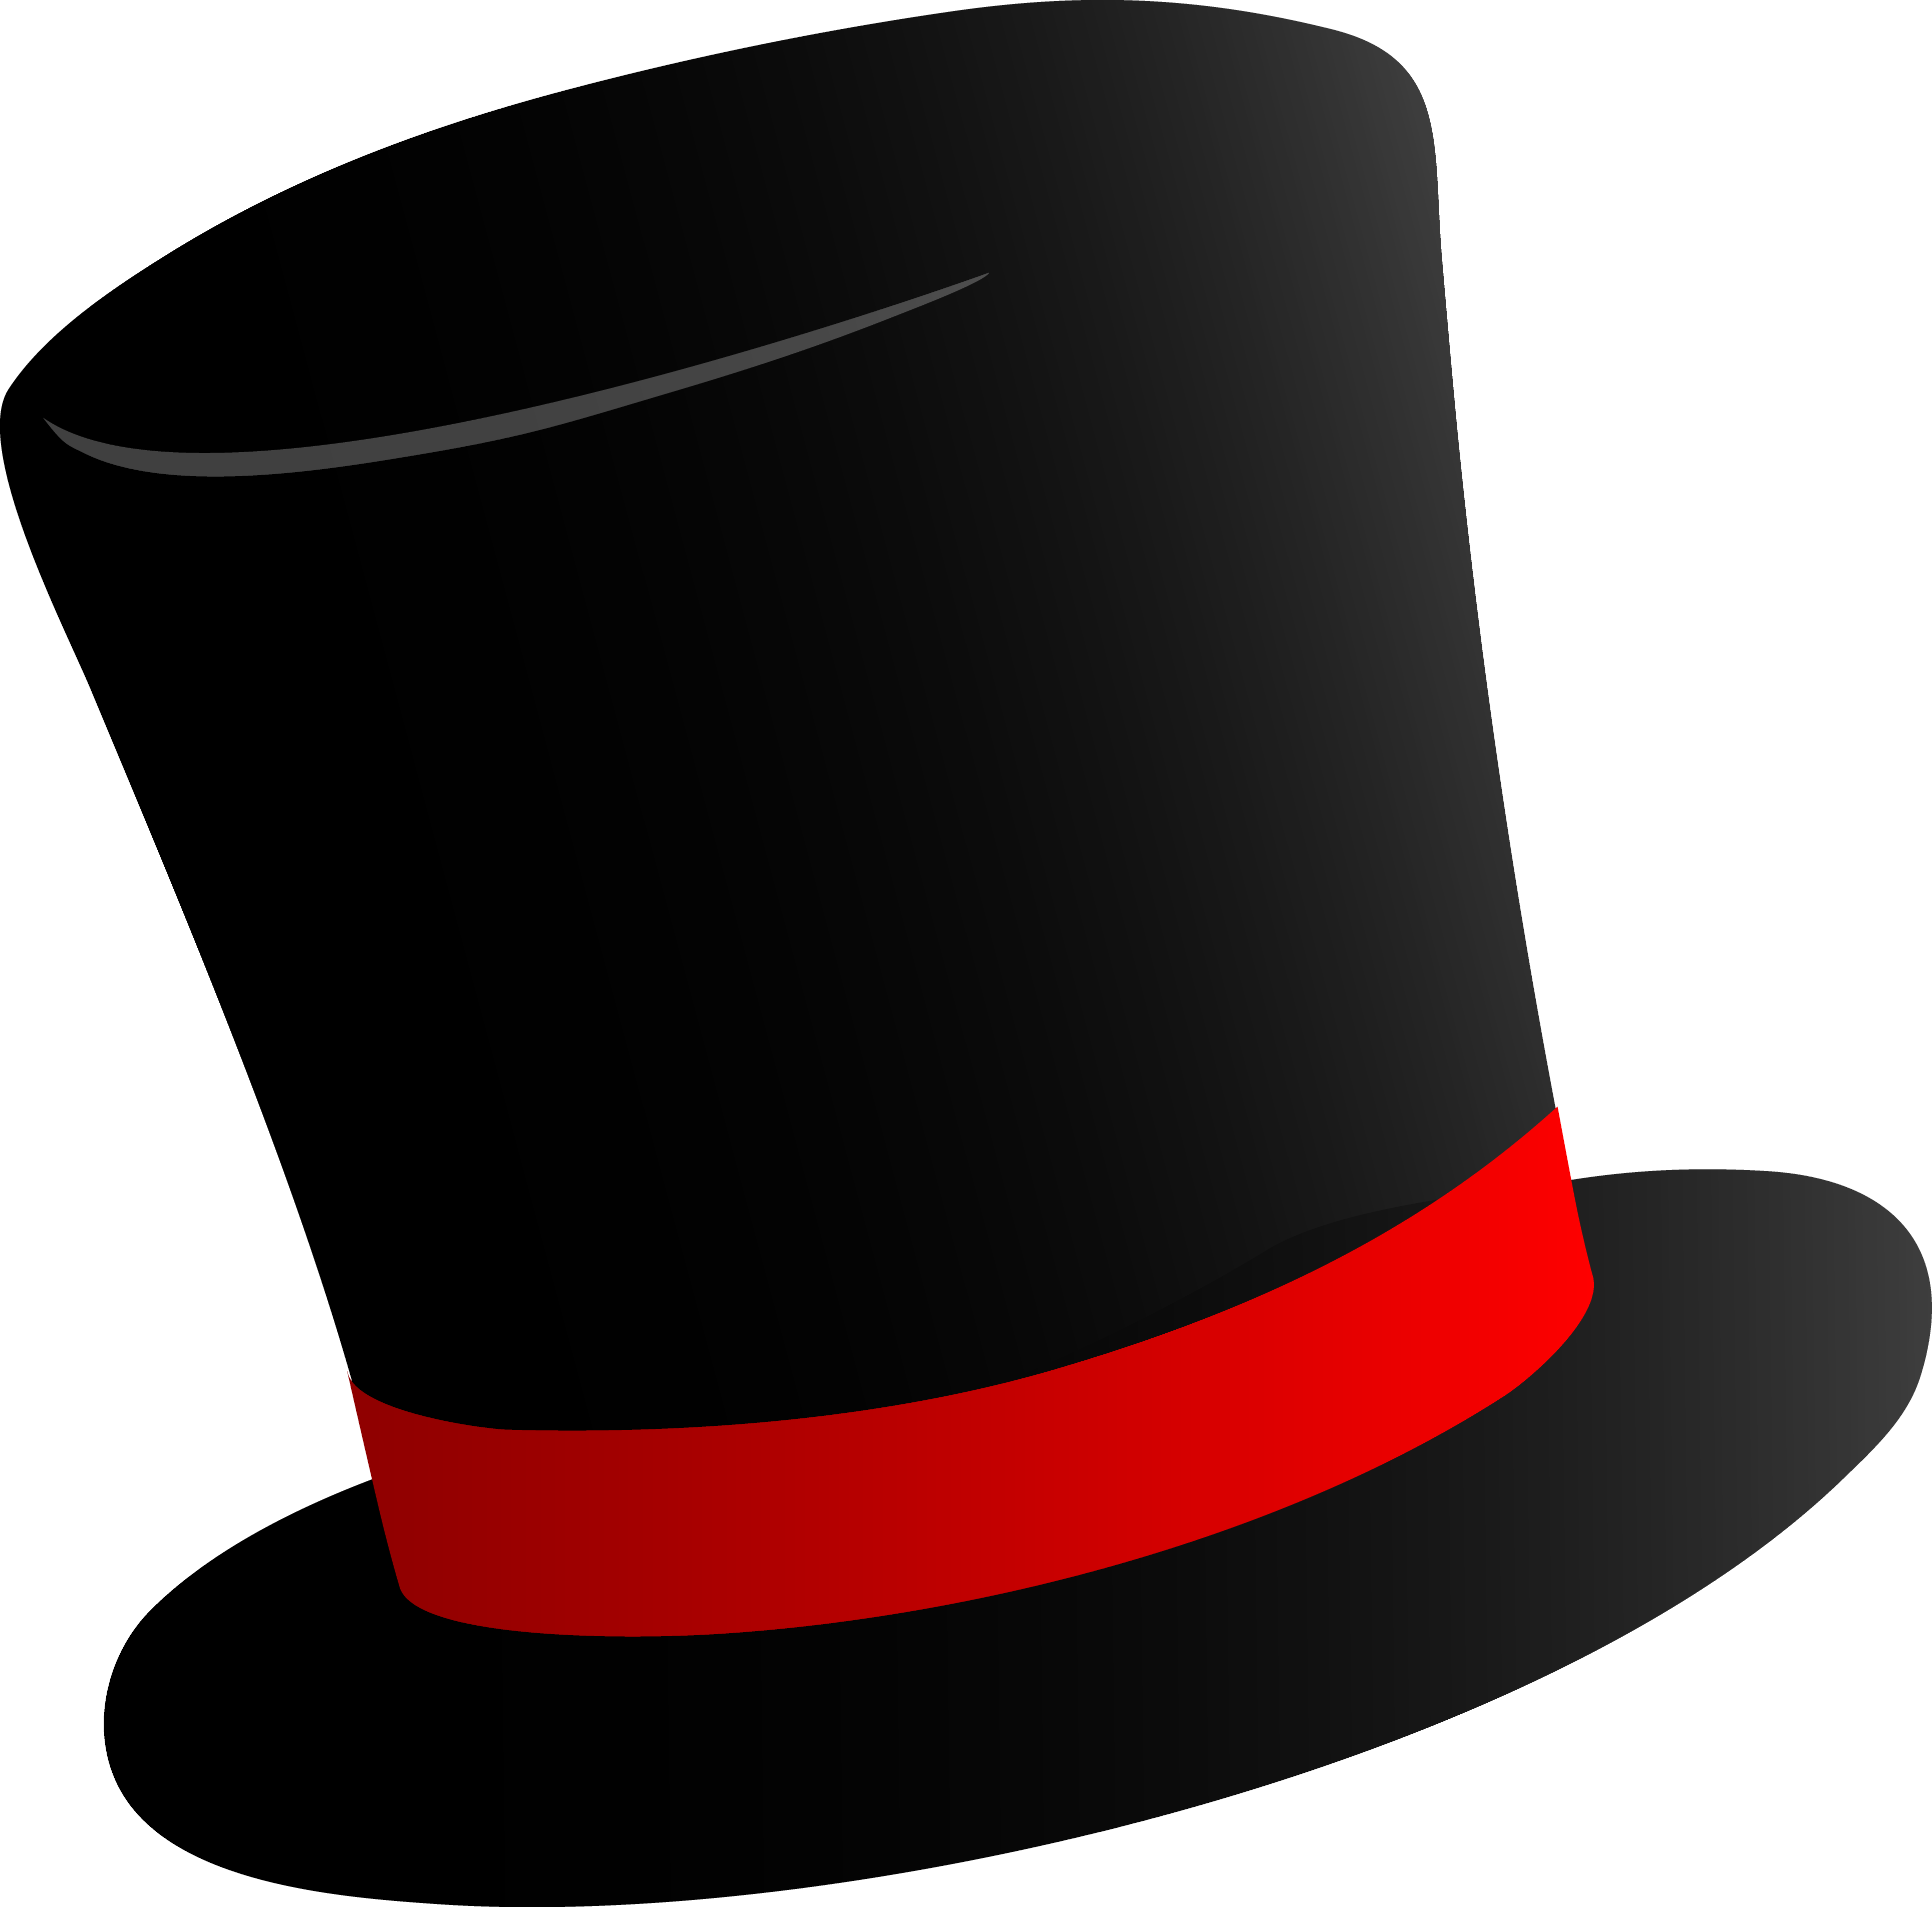 clipart freeuse download Funny get any kind. Wonderland clipart top hat